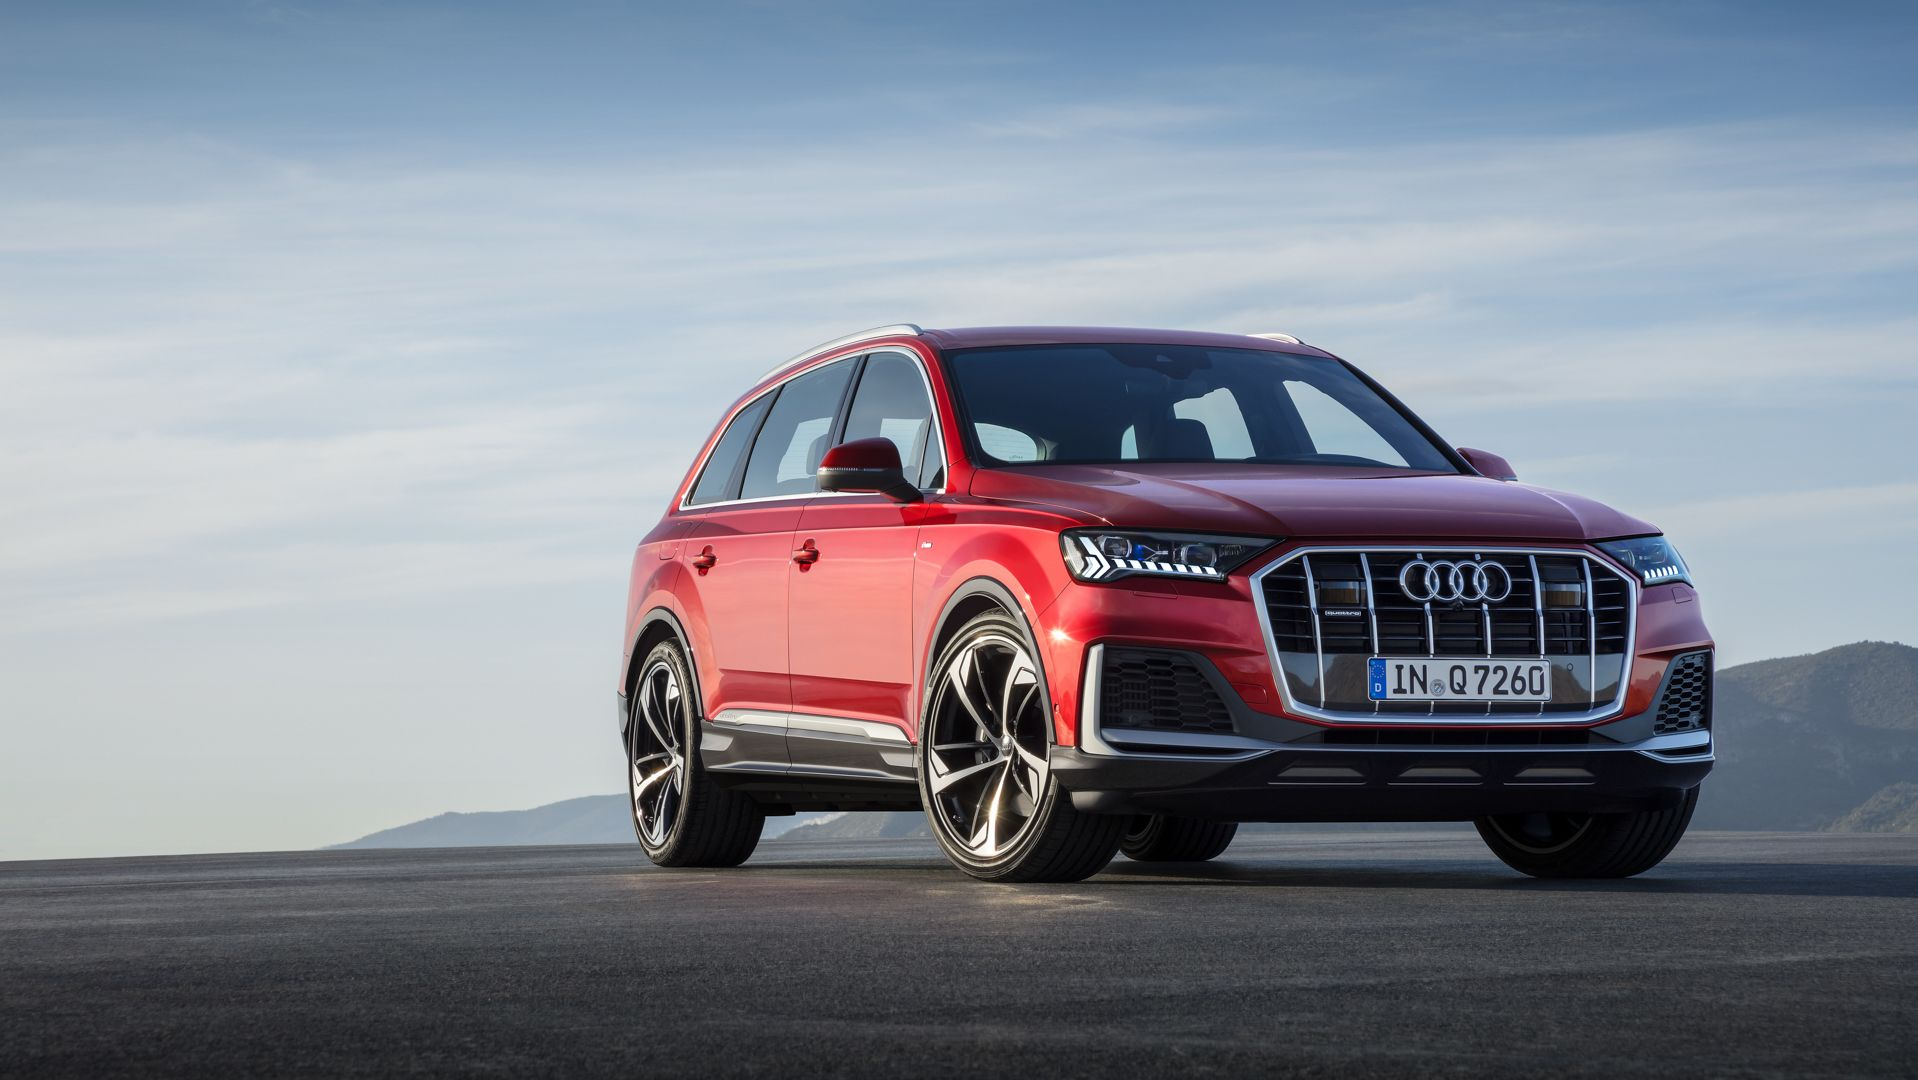 New Audi Q7 Gets The Same Active Roll Stabilization As Lamborghini Urus Audi Q7 New Audi Q7 Audi